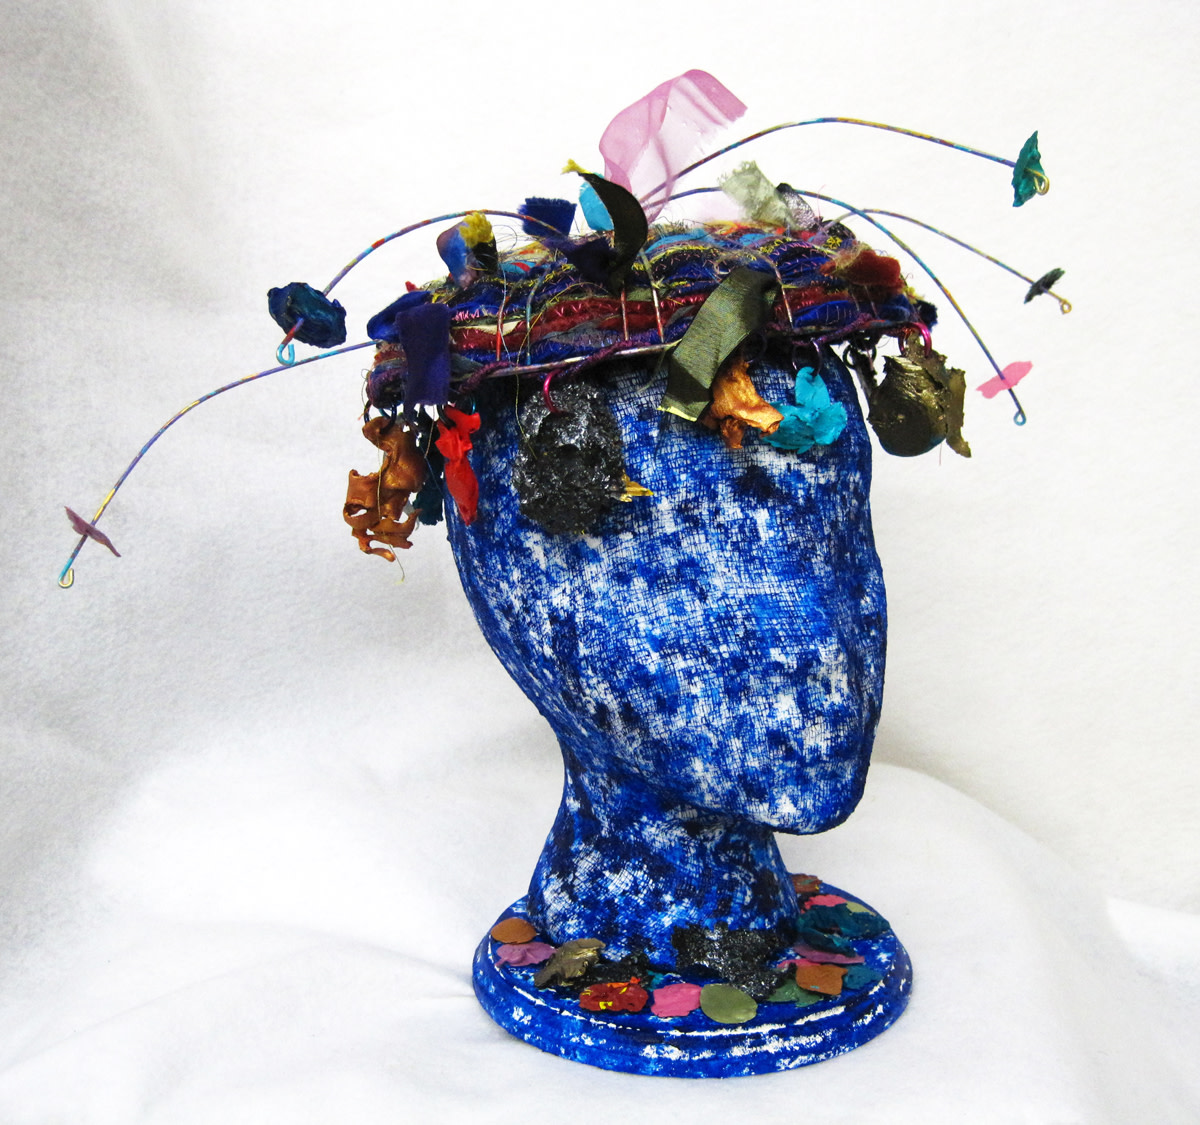 And Visions of Paint Chips Danced Through Her Head by Barbetta Lockart